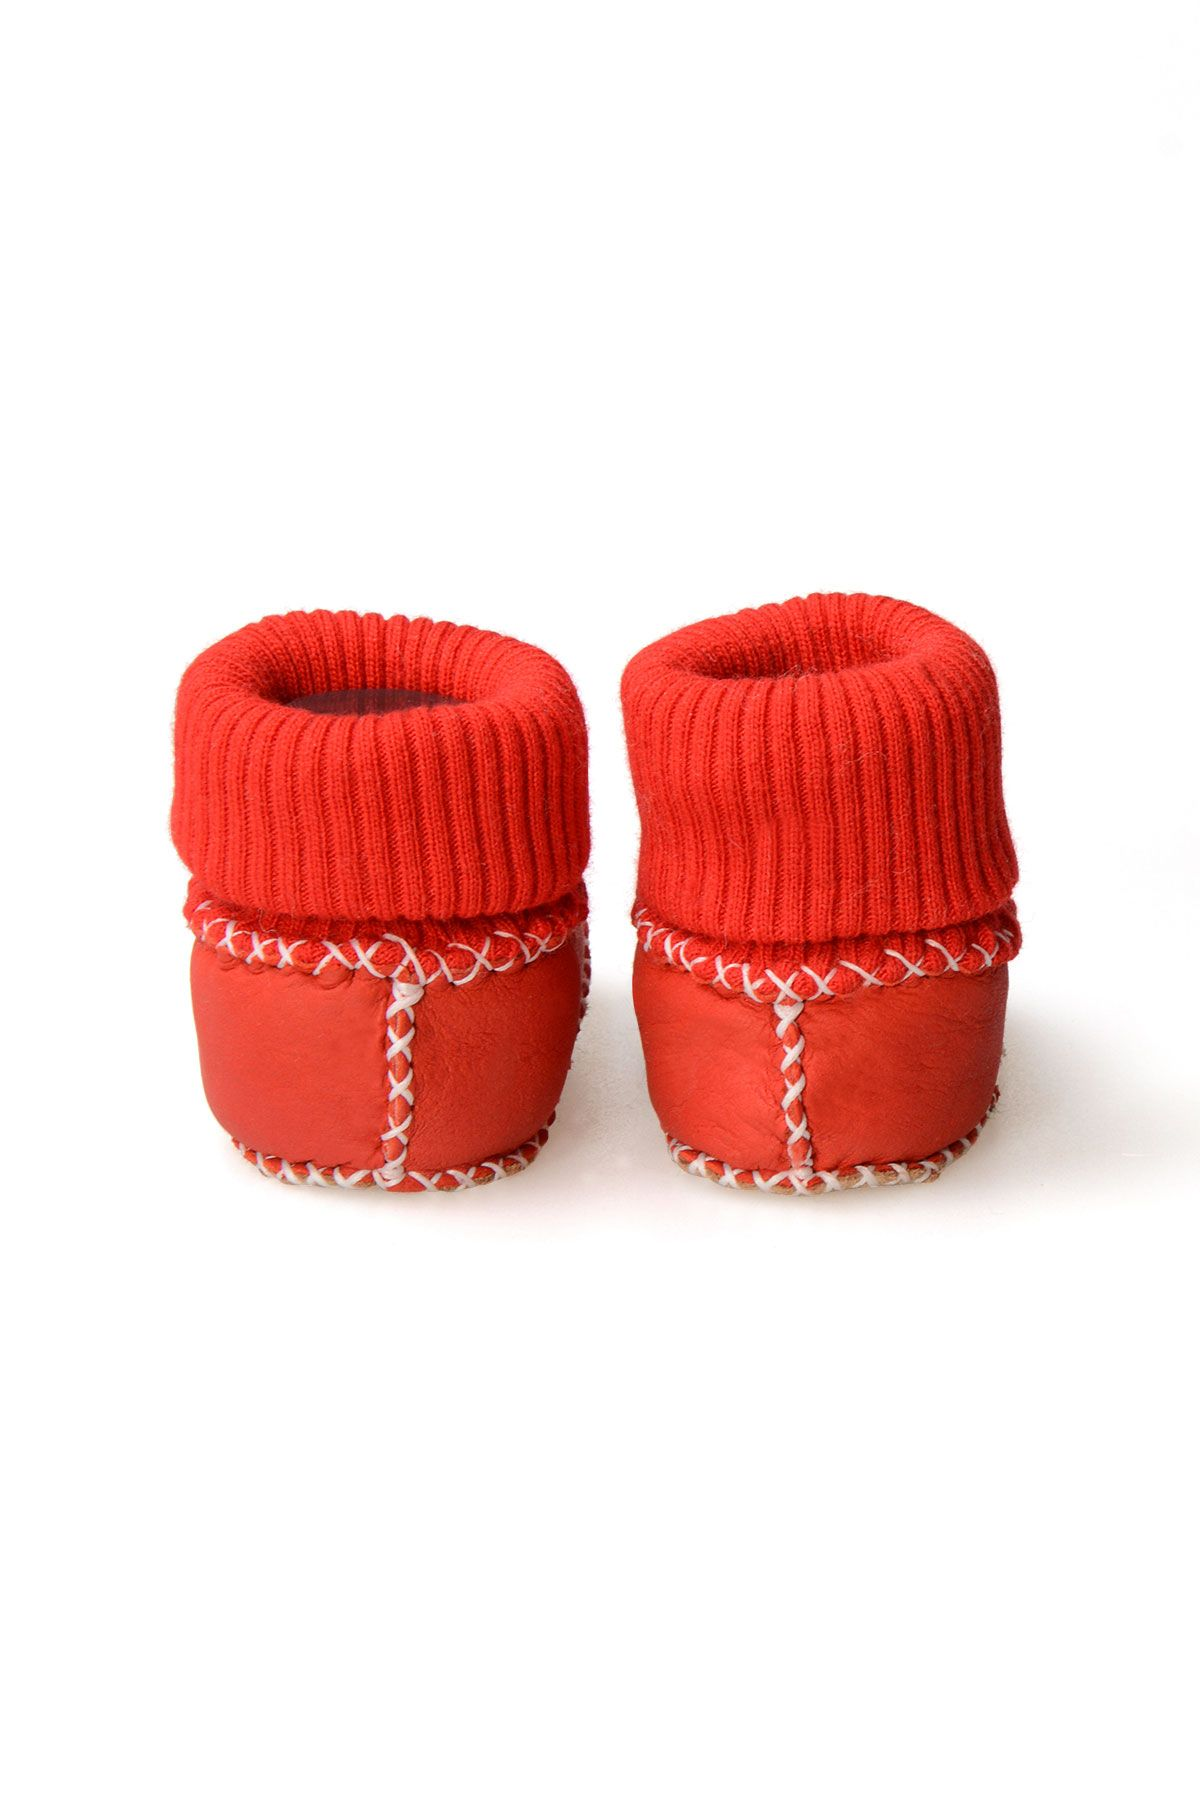 Pegia Shearling Baby's Booties With Socks 141107 Red